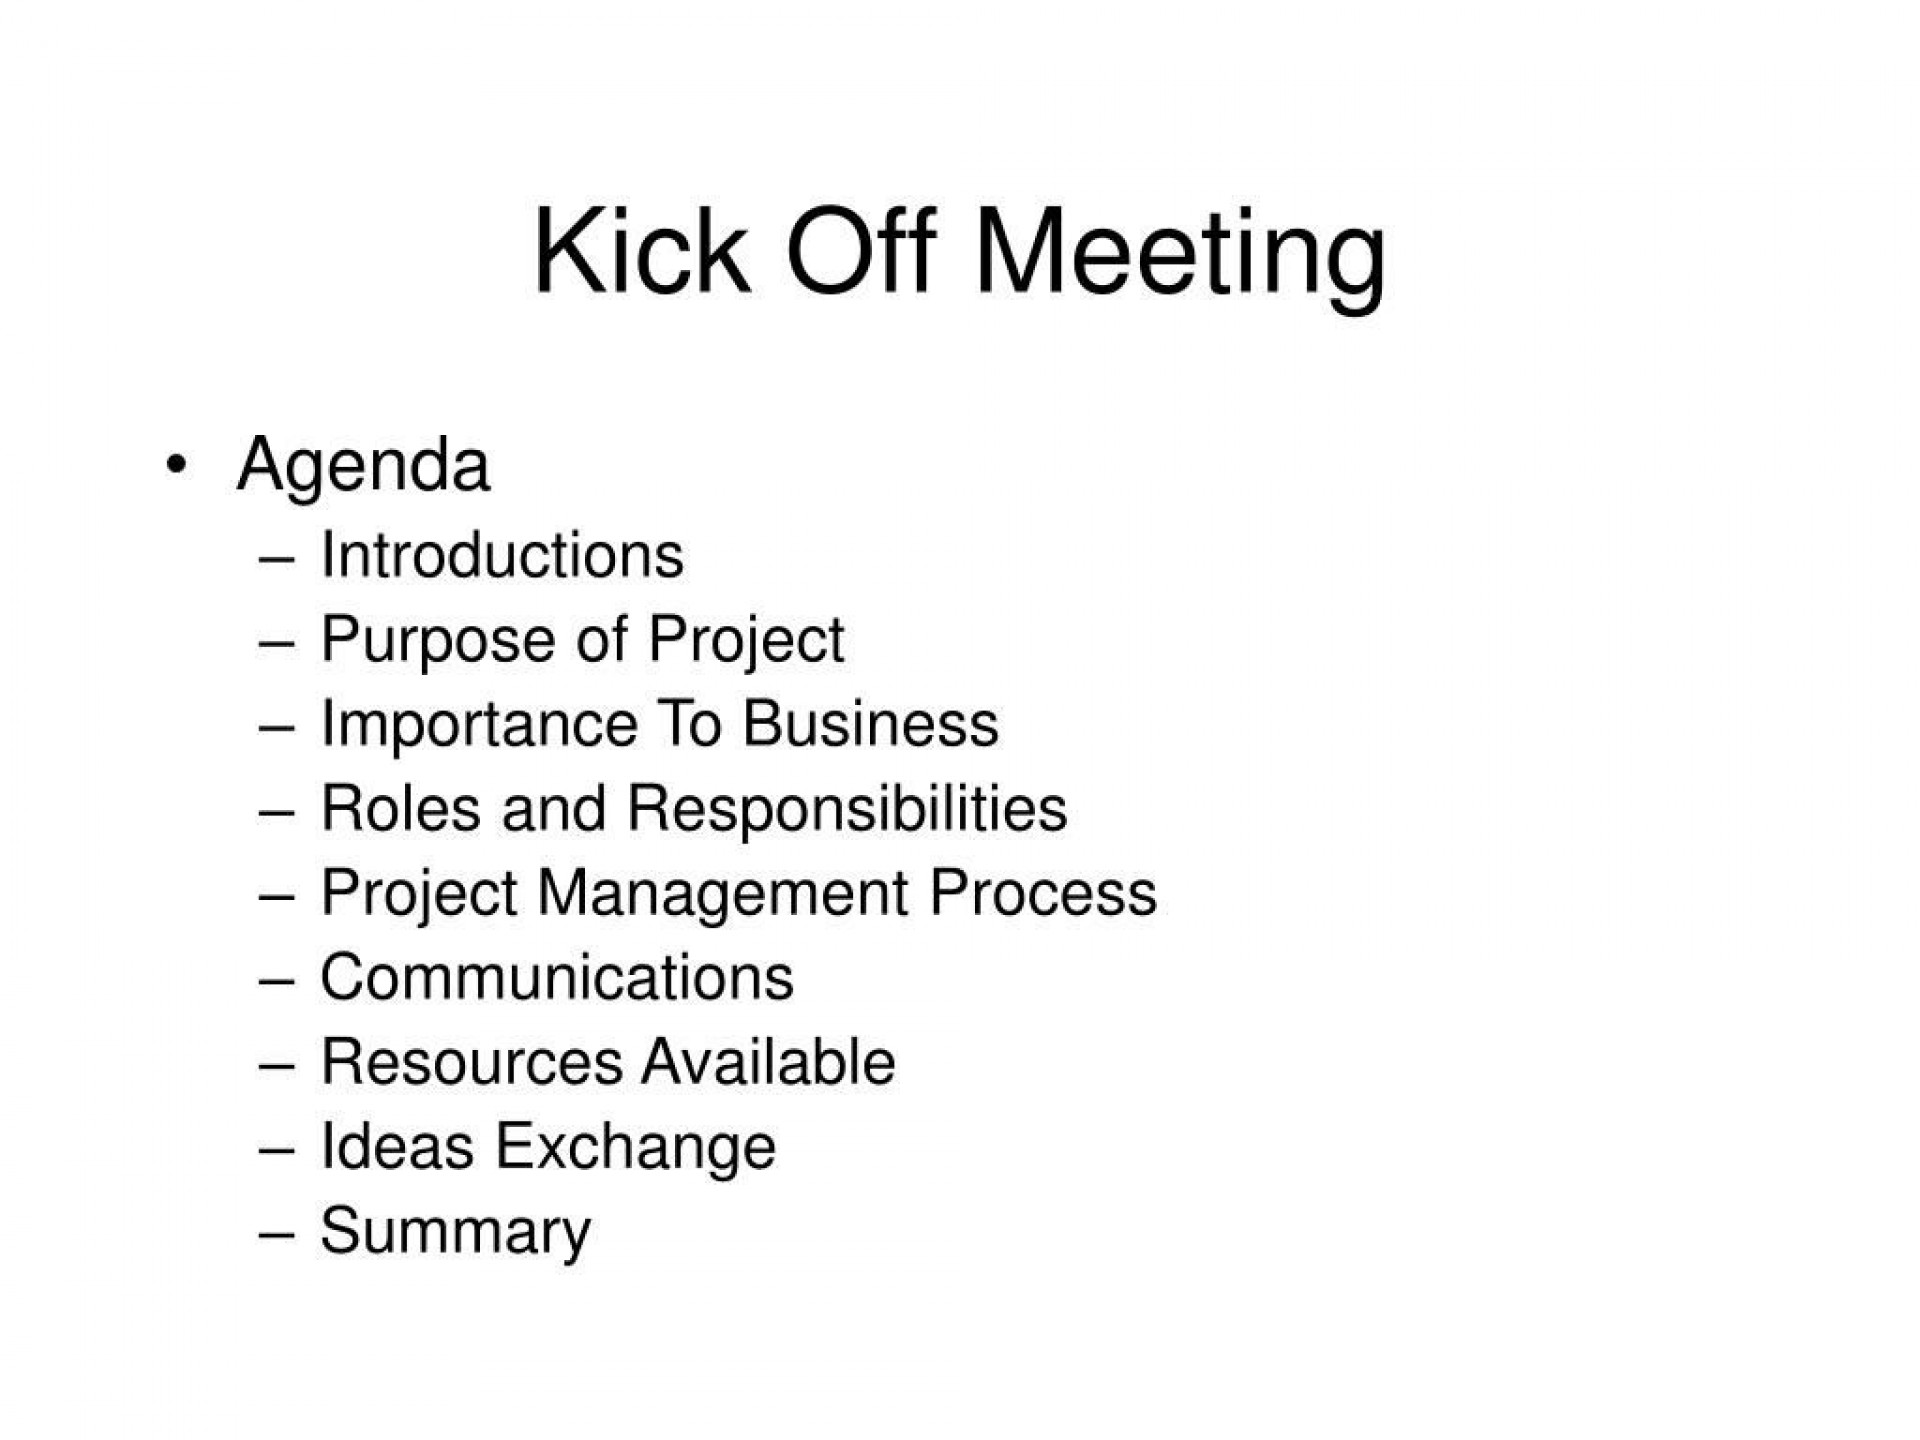 004 Simple Project Kickoff Meeting Agenda Example Sample  Management Template1920